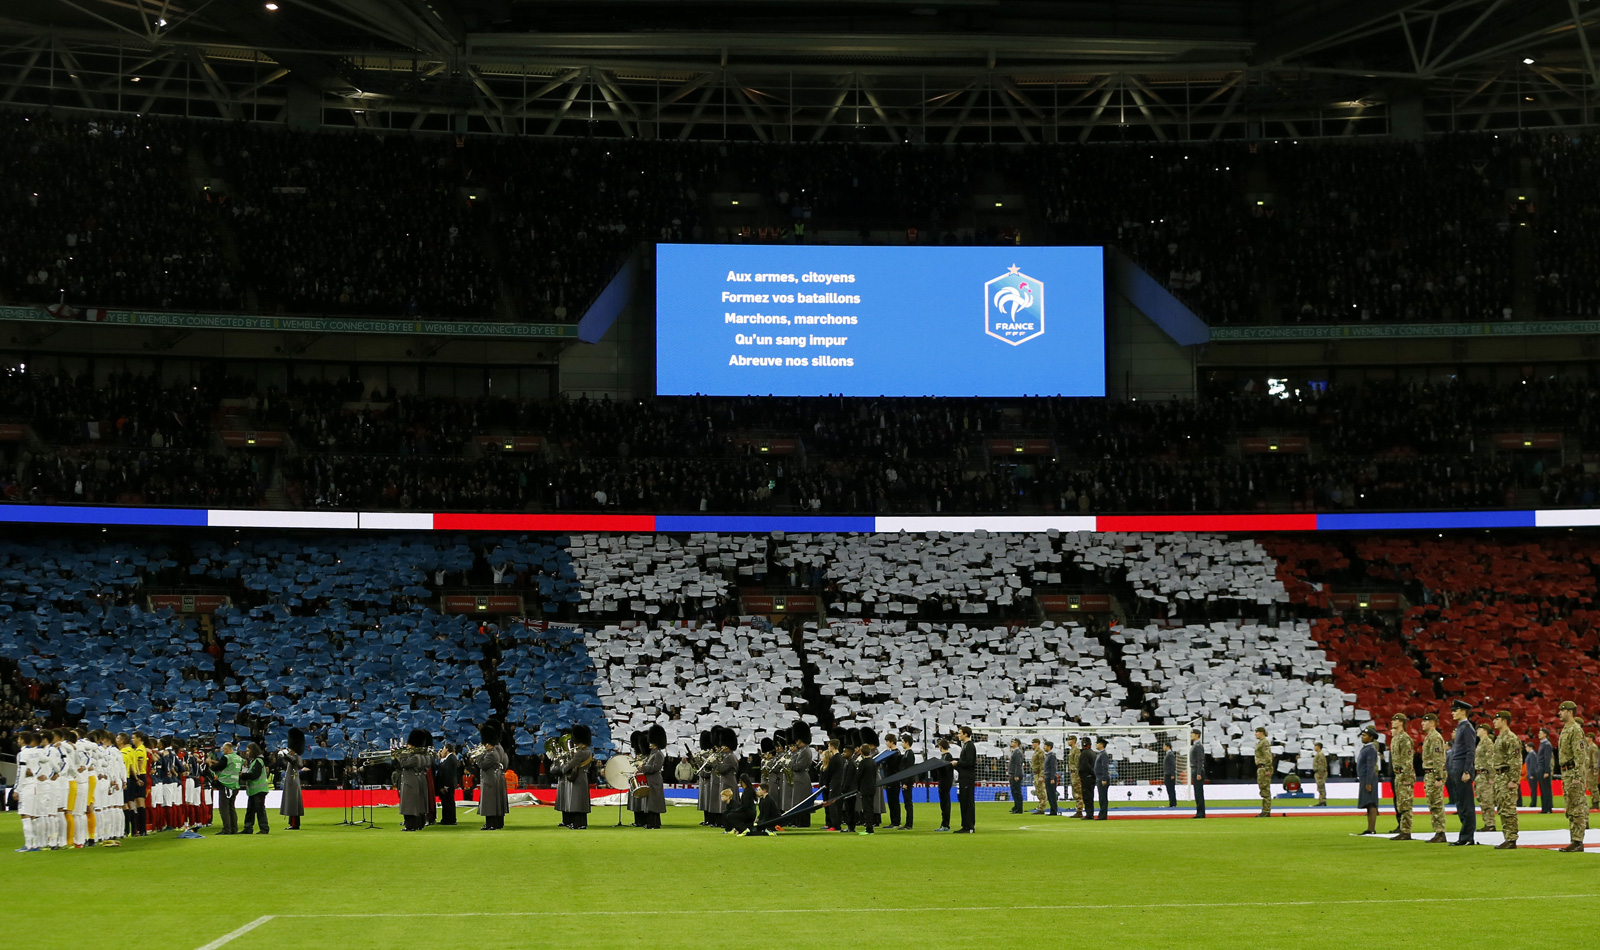 Fans make a French flag tifo at Wembley Stadium during the singing of Le Marseillaise ahead of England's friendly vs. France, which took place days after the terrorist attacks in Paris.